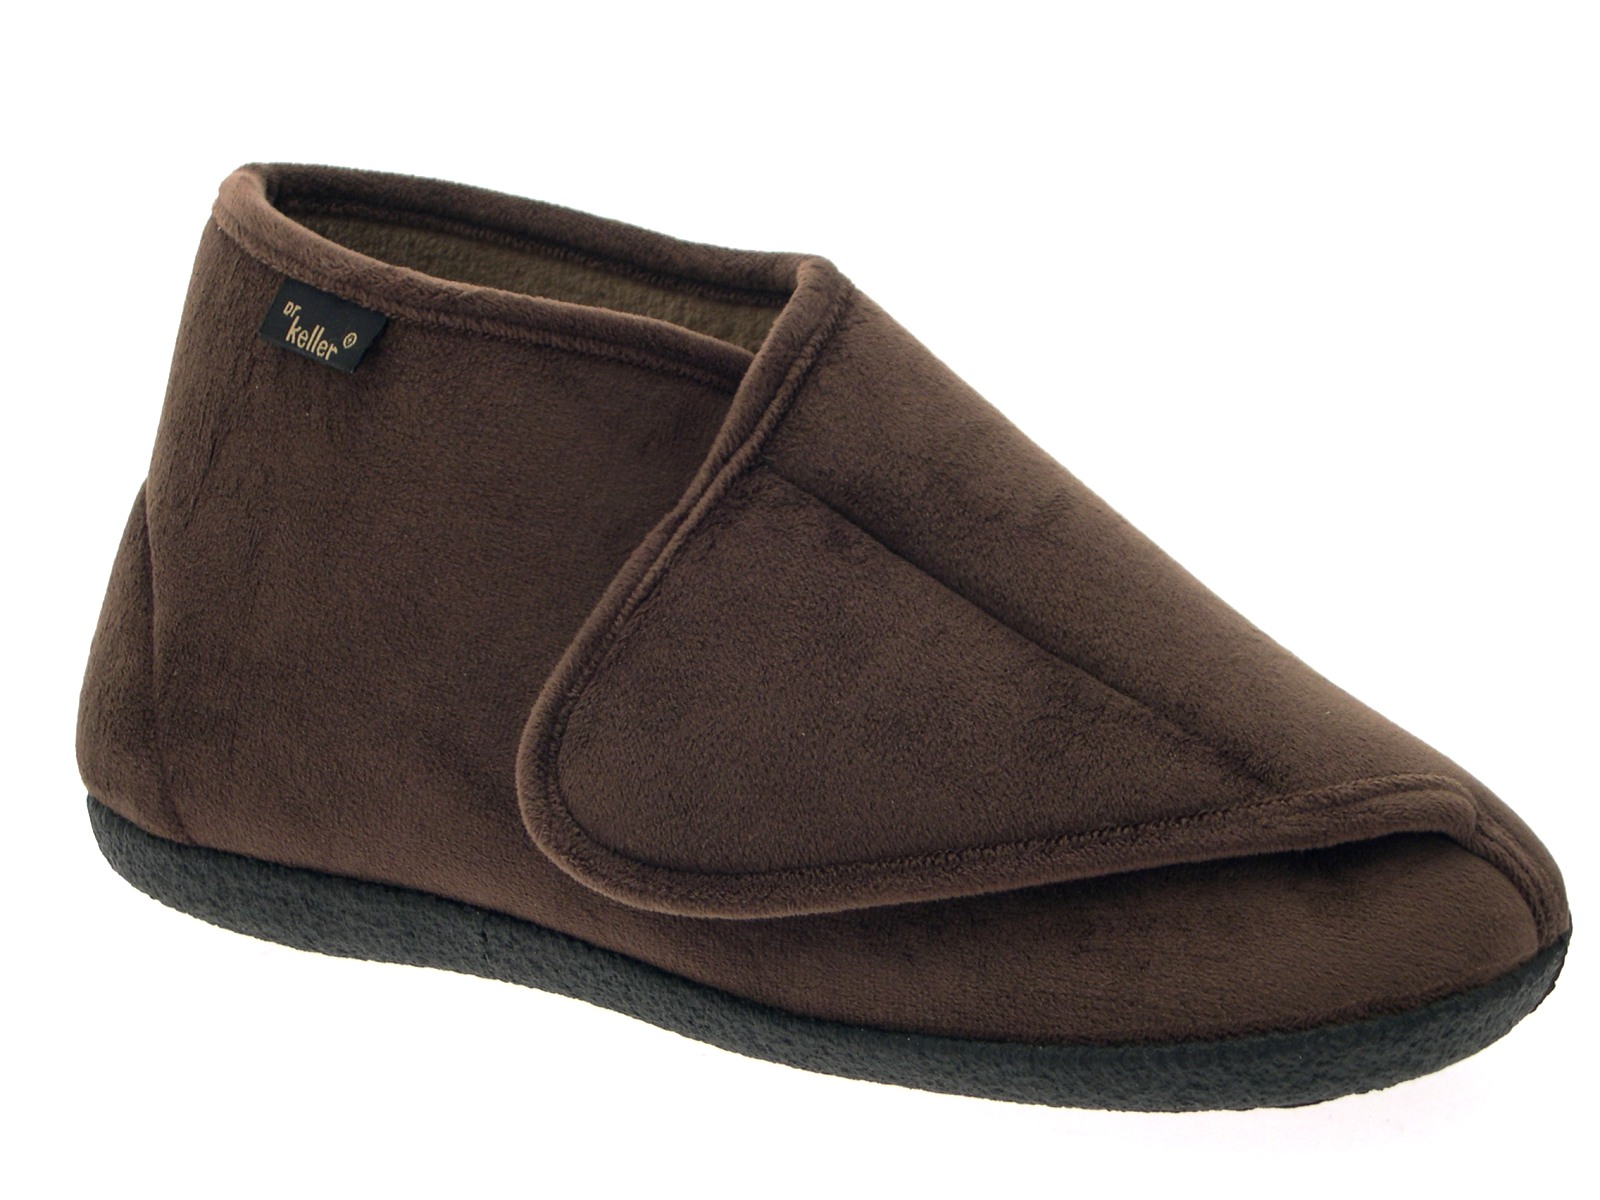 Mens House Shoes Wide Home Design